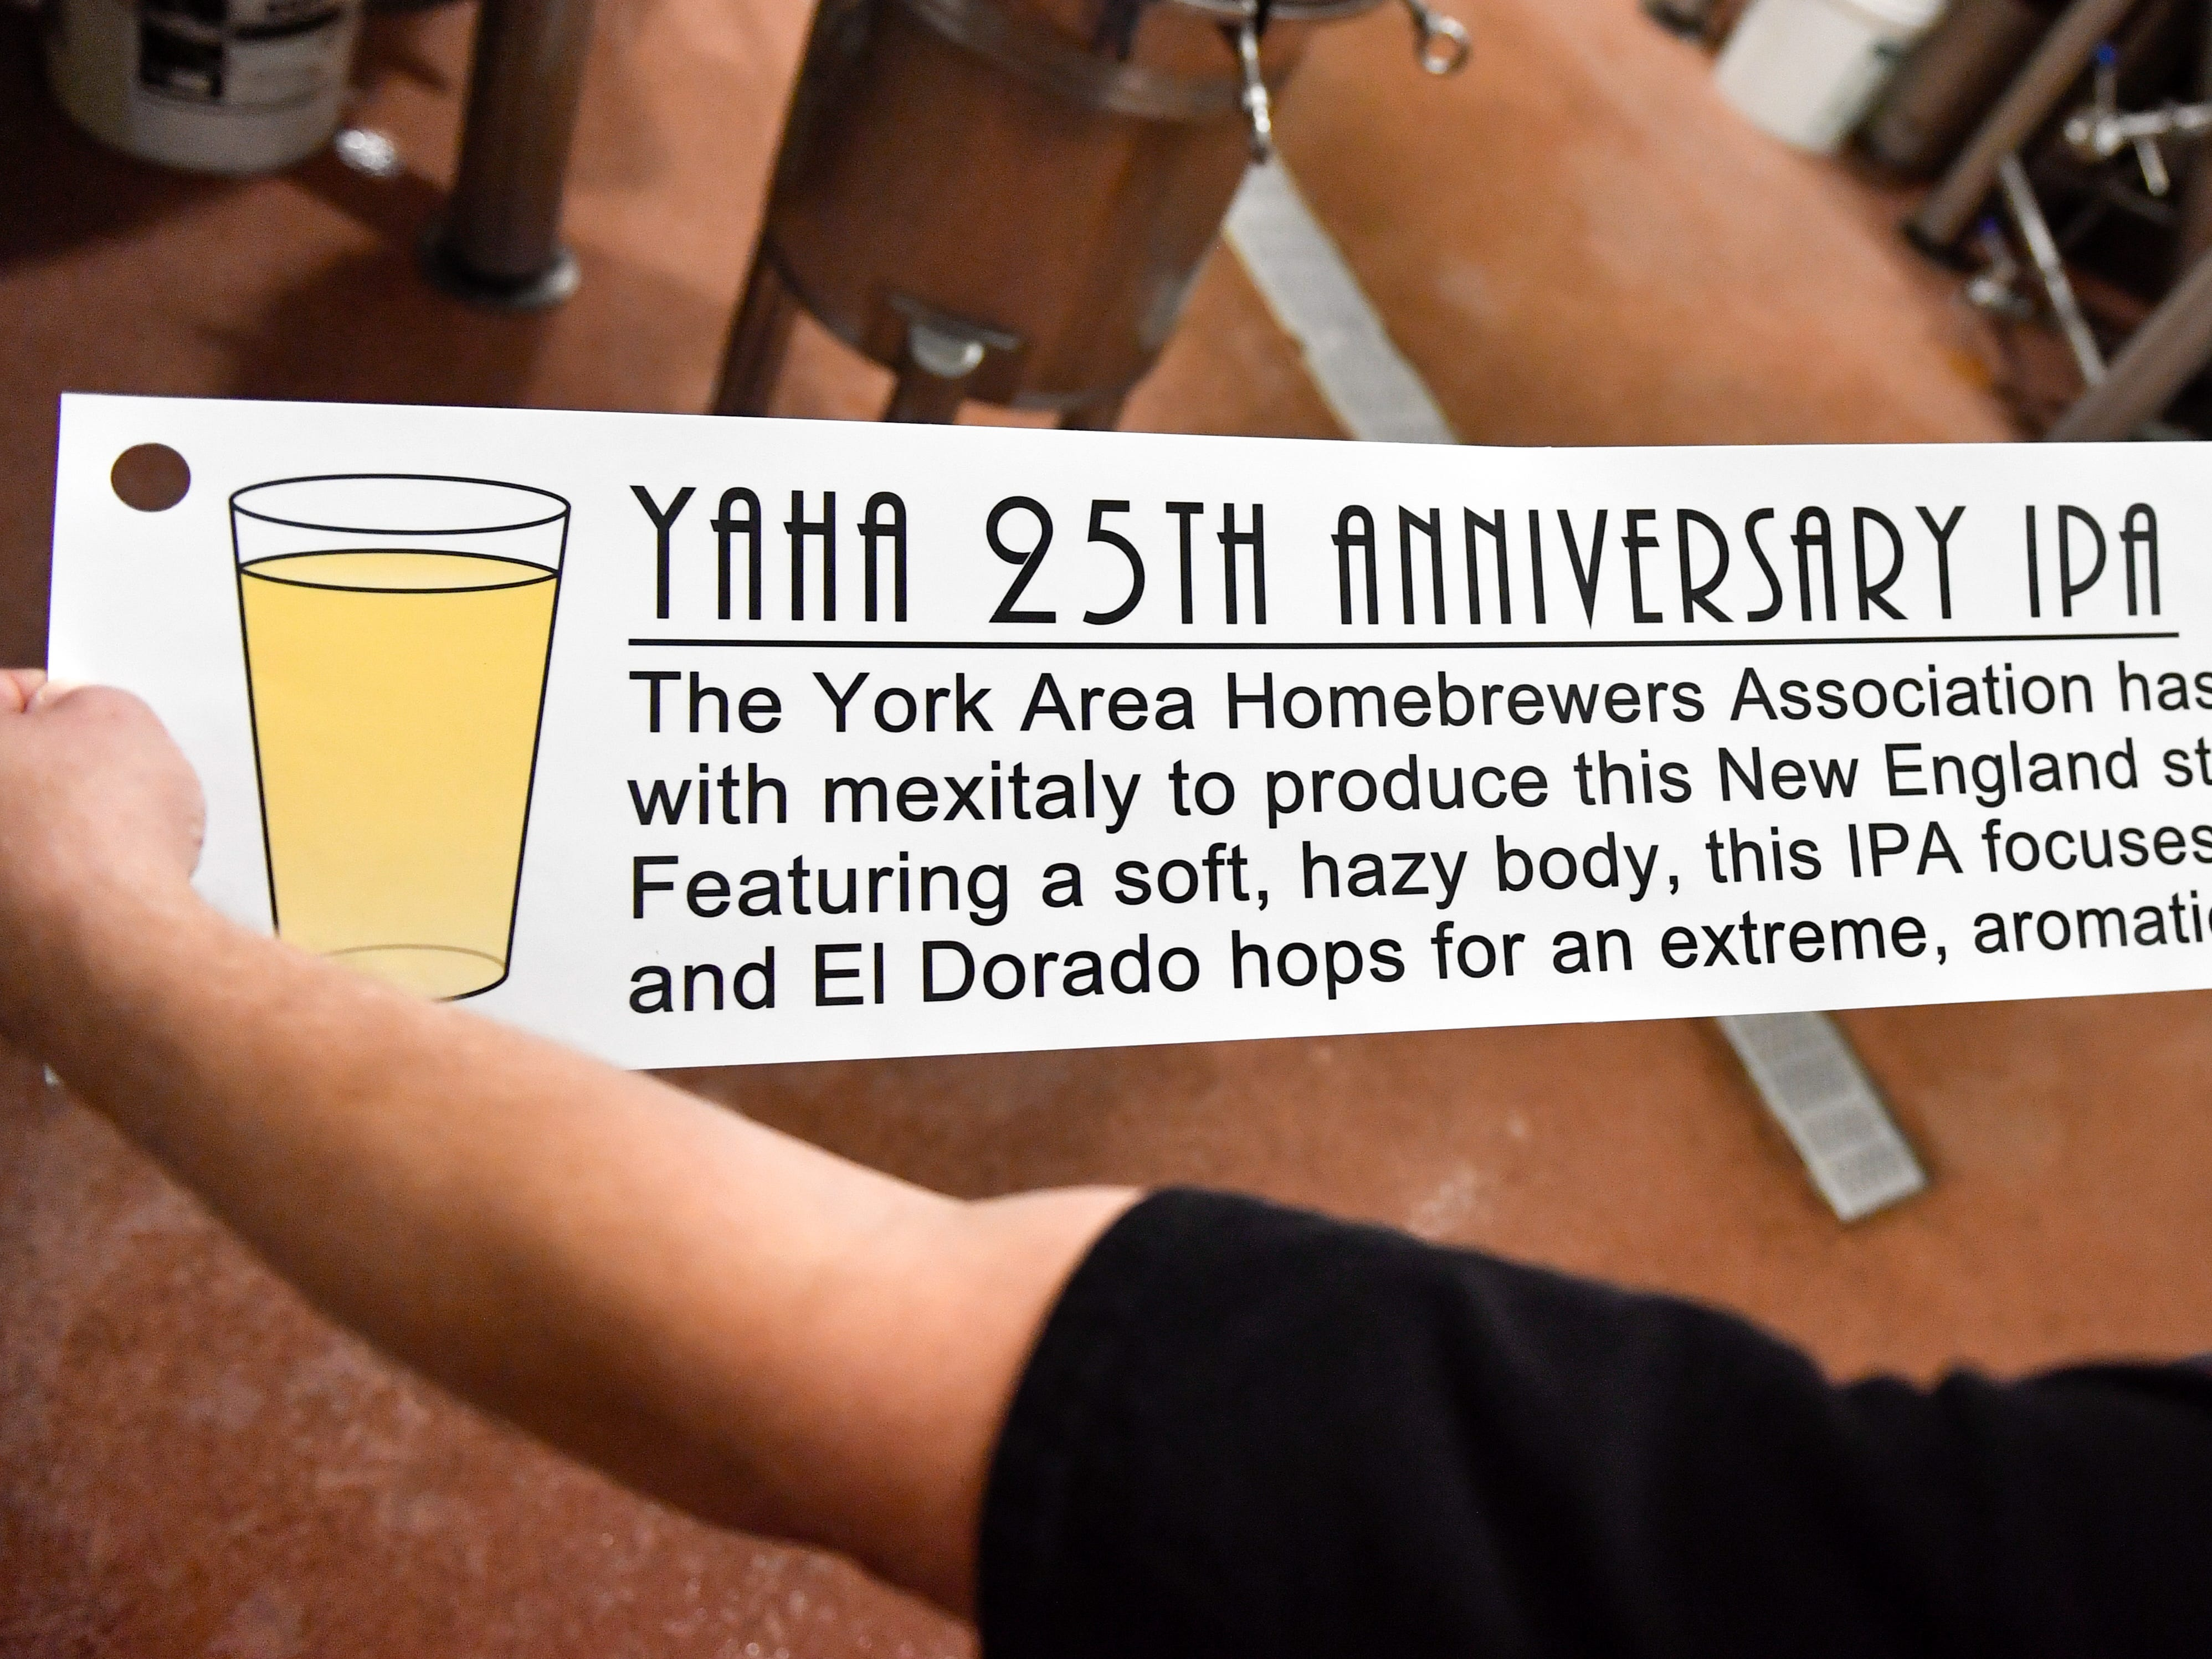 A 25th anniversary banner will be hung up once the New England style IPA is presented to the members of the York Area Homebrewers Association.